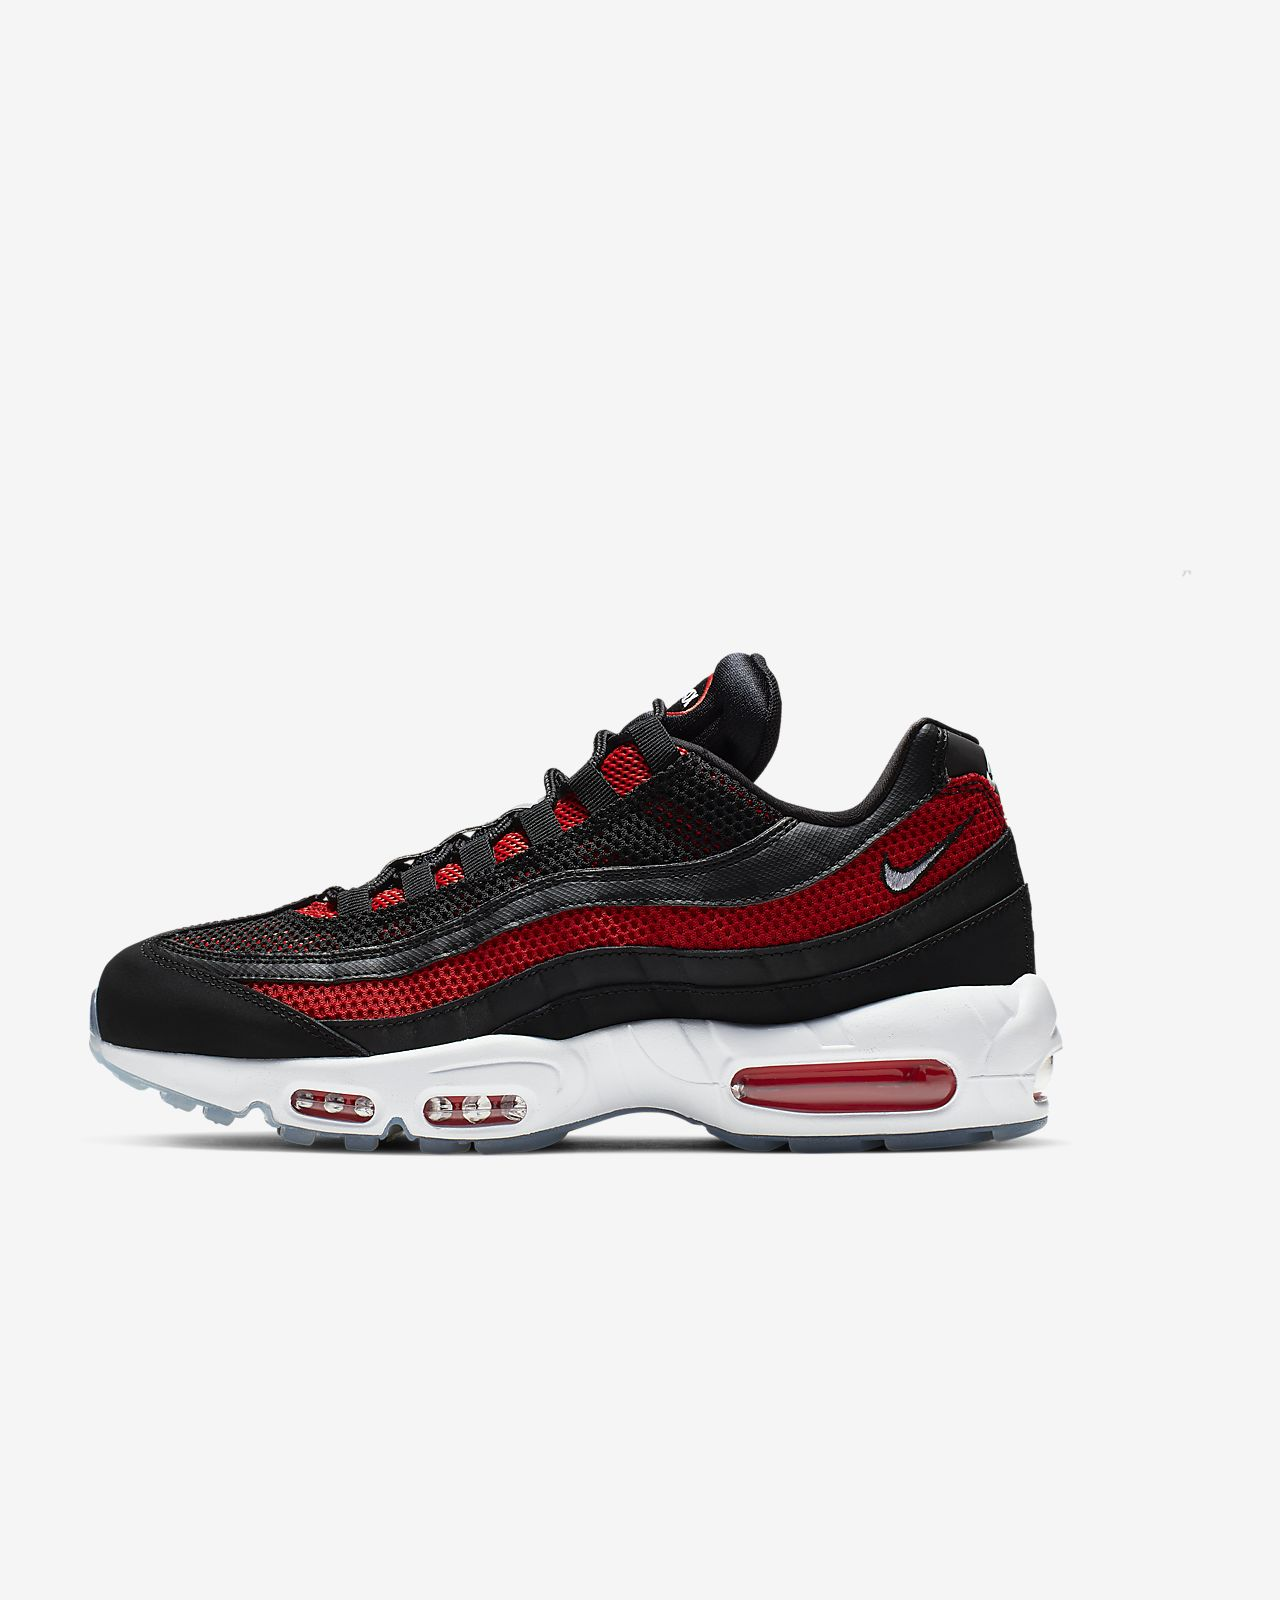 online retailer 0f76c 6bb58 ... Nike Air Max 95 Essential Men s Shoe